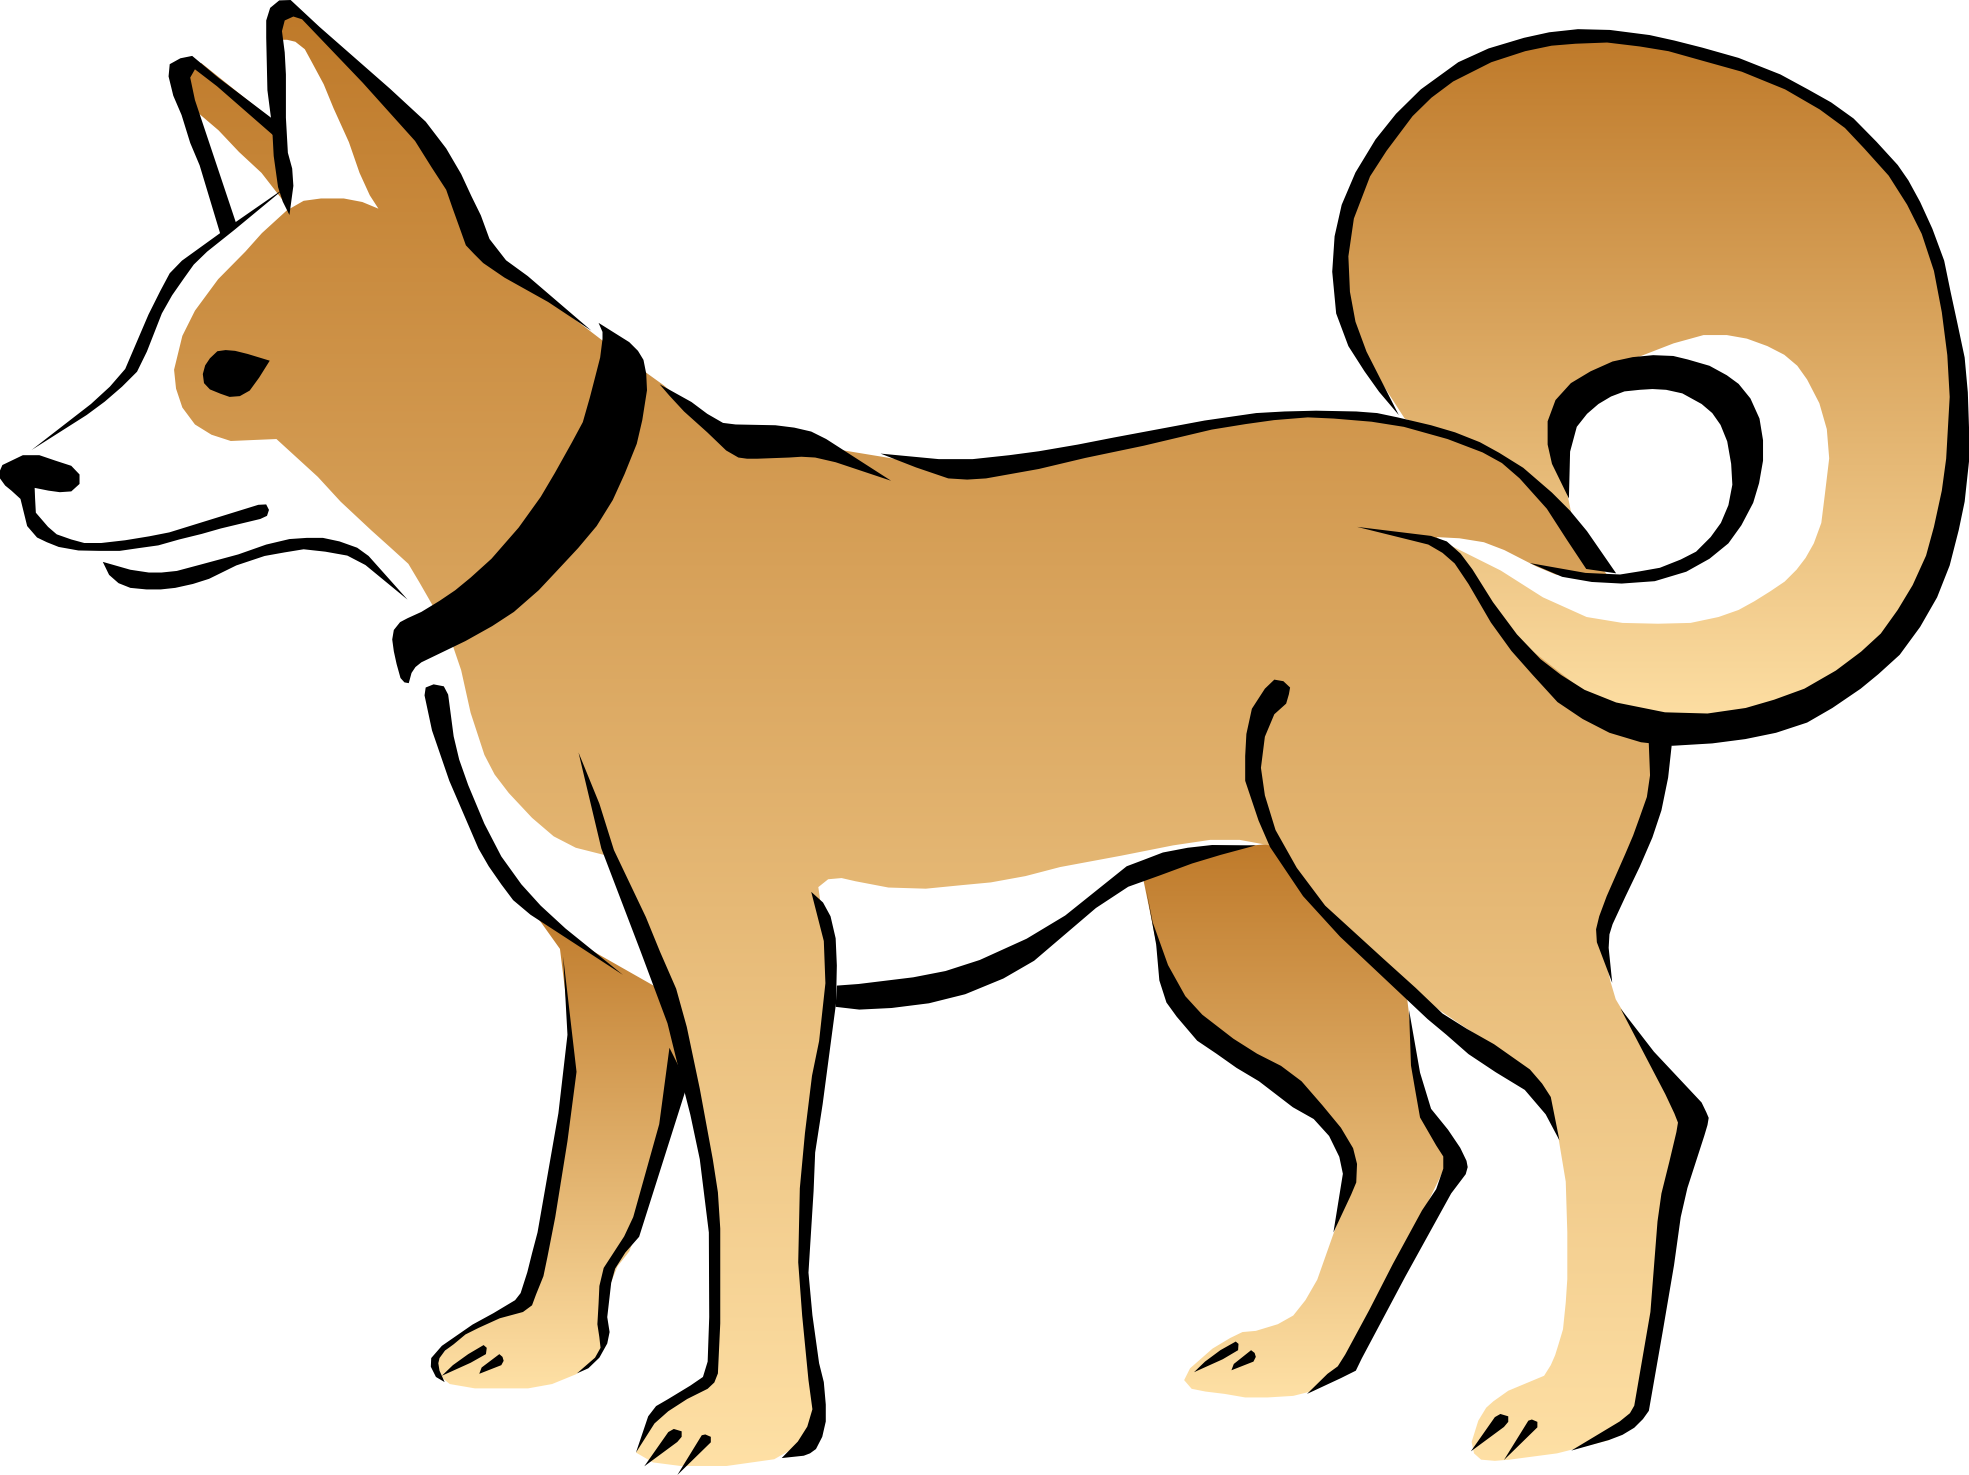 Sad animals png. Dogs clipart clip art